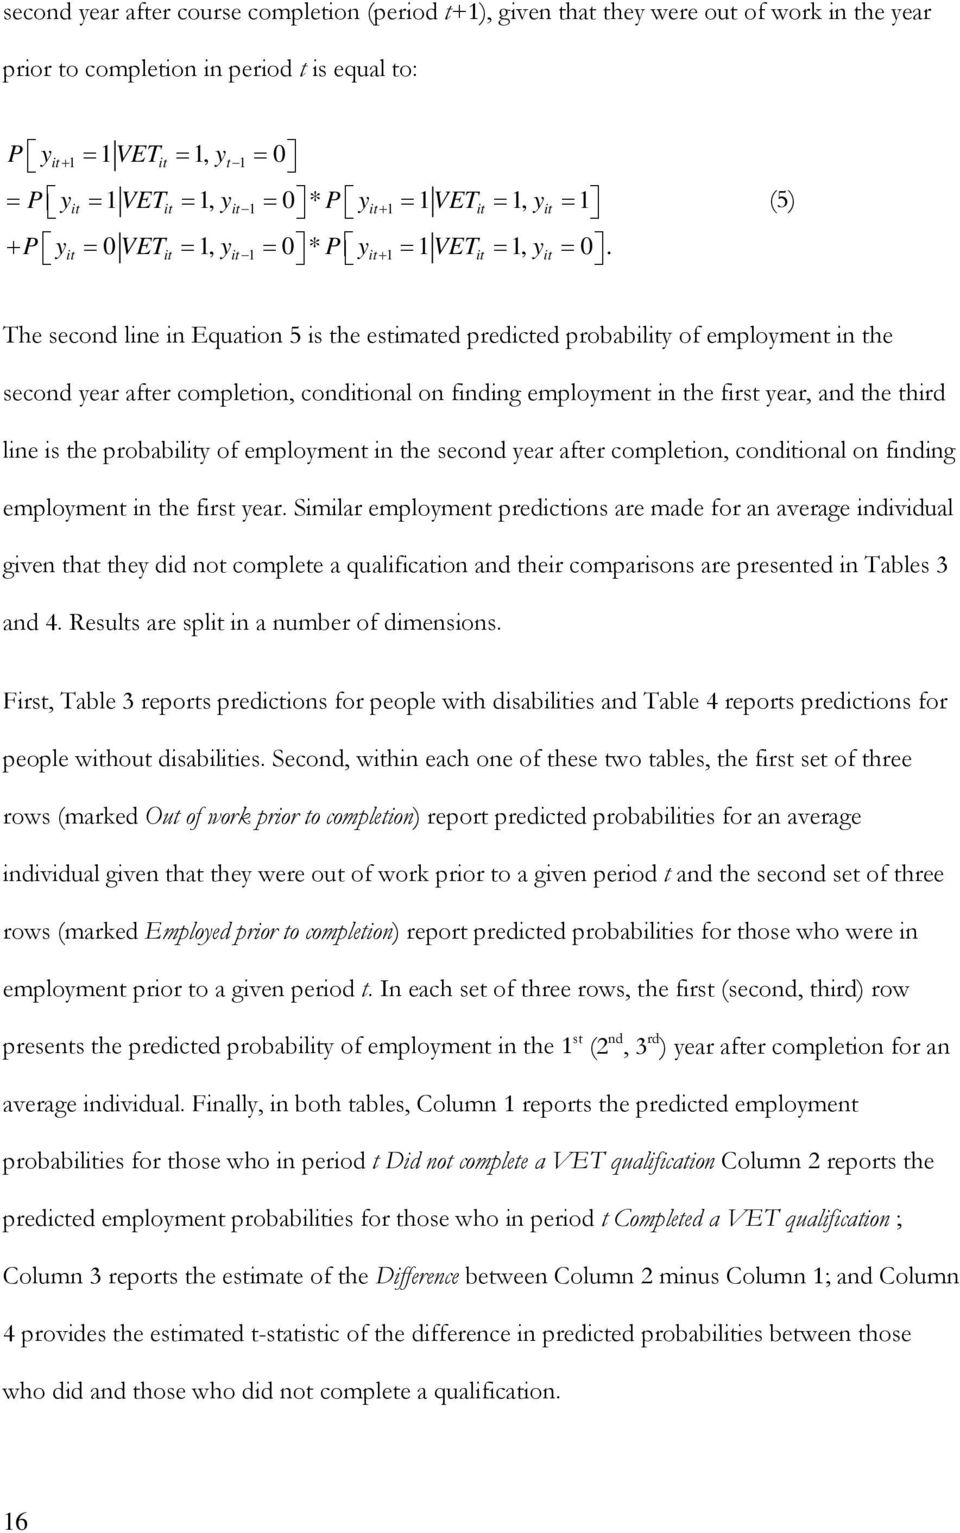 it it it 1 it+ 1 it it (5) The second line in Equation 5 is the estimated predicted probability of employment in the second year after completion, conditional on finding employment in the first year,